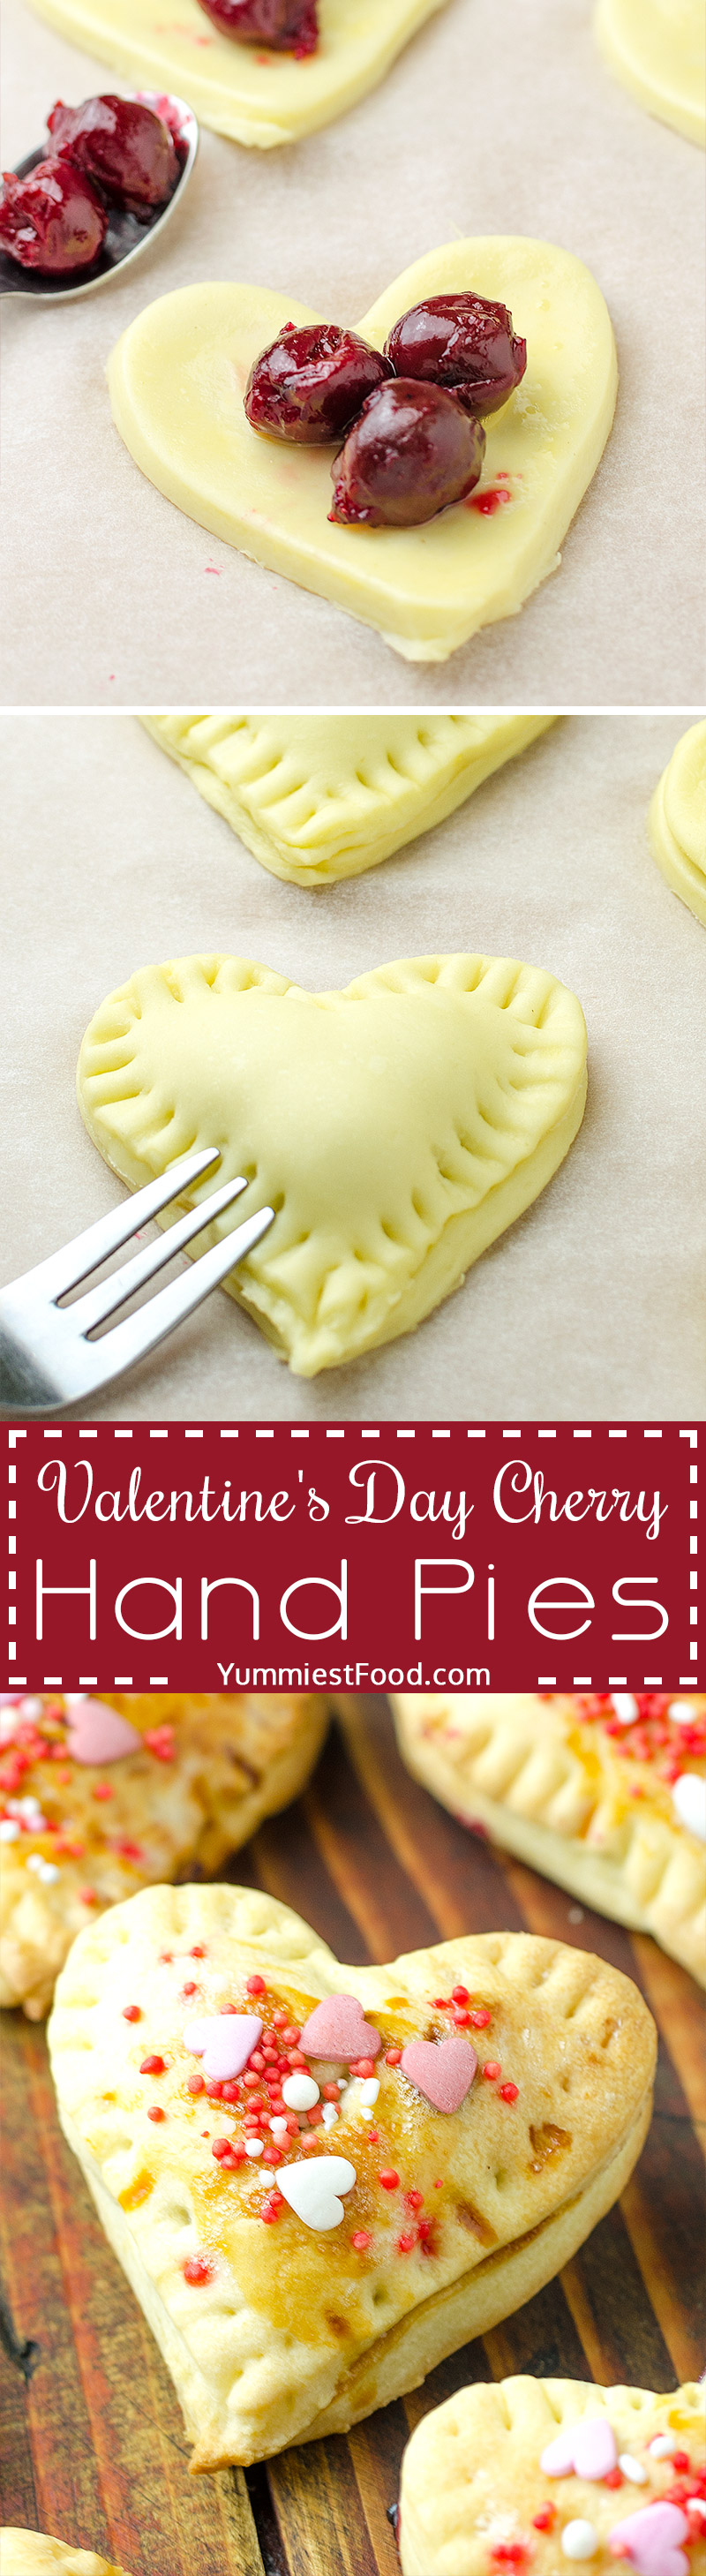 Valentine's Day Cherry Hand Pies - a special recipe for a special occasion Valentine's Day